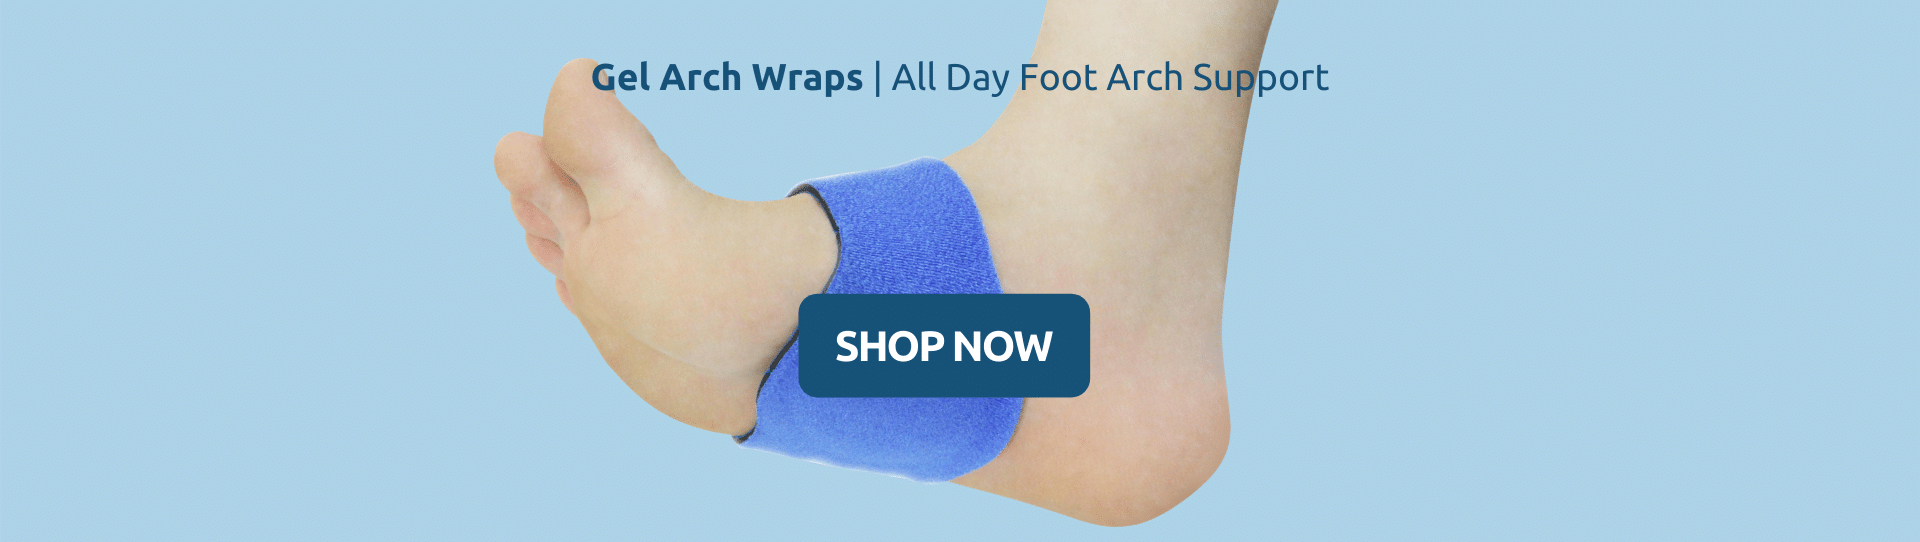 Buy Gel Arch Wraps